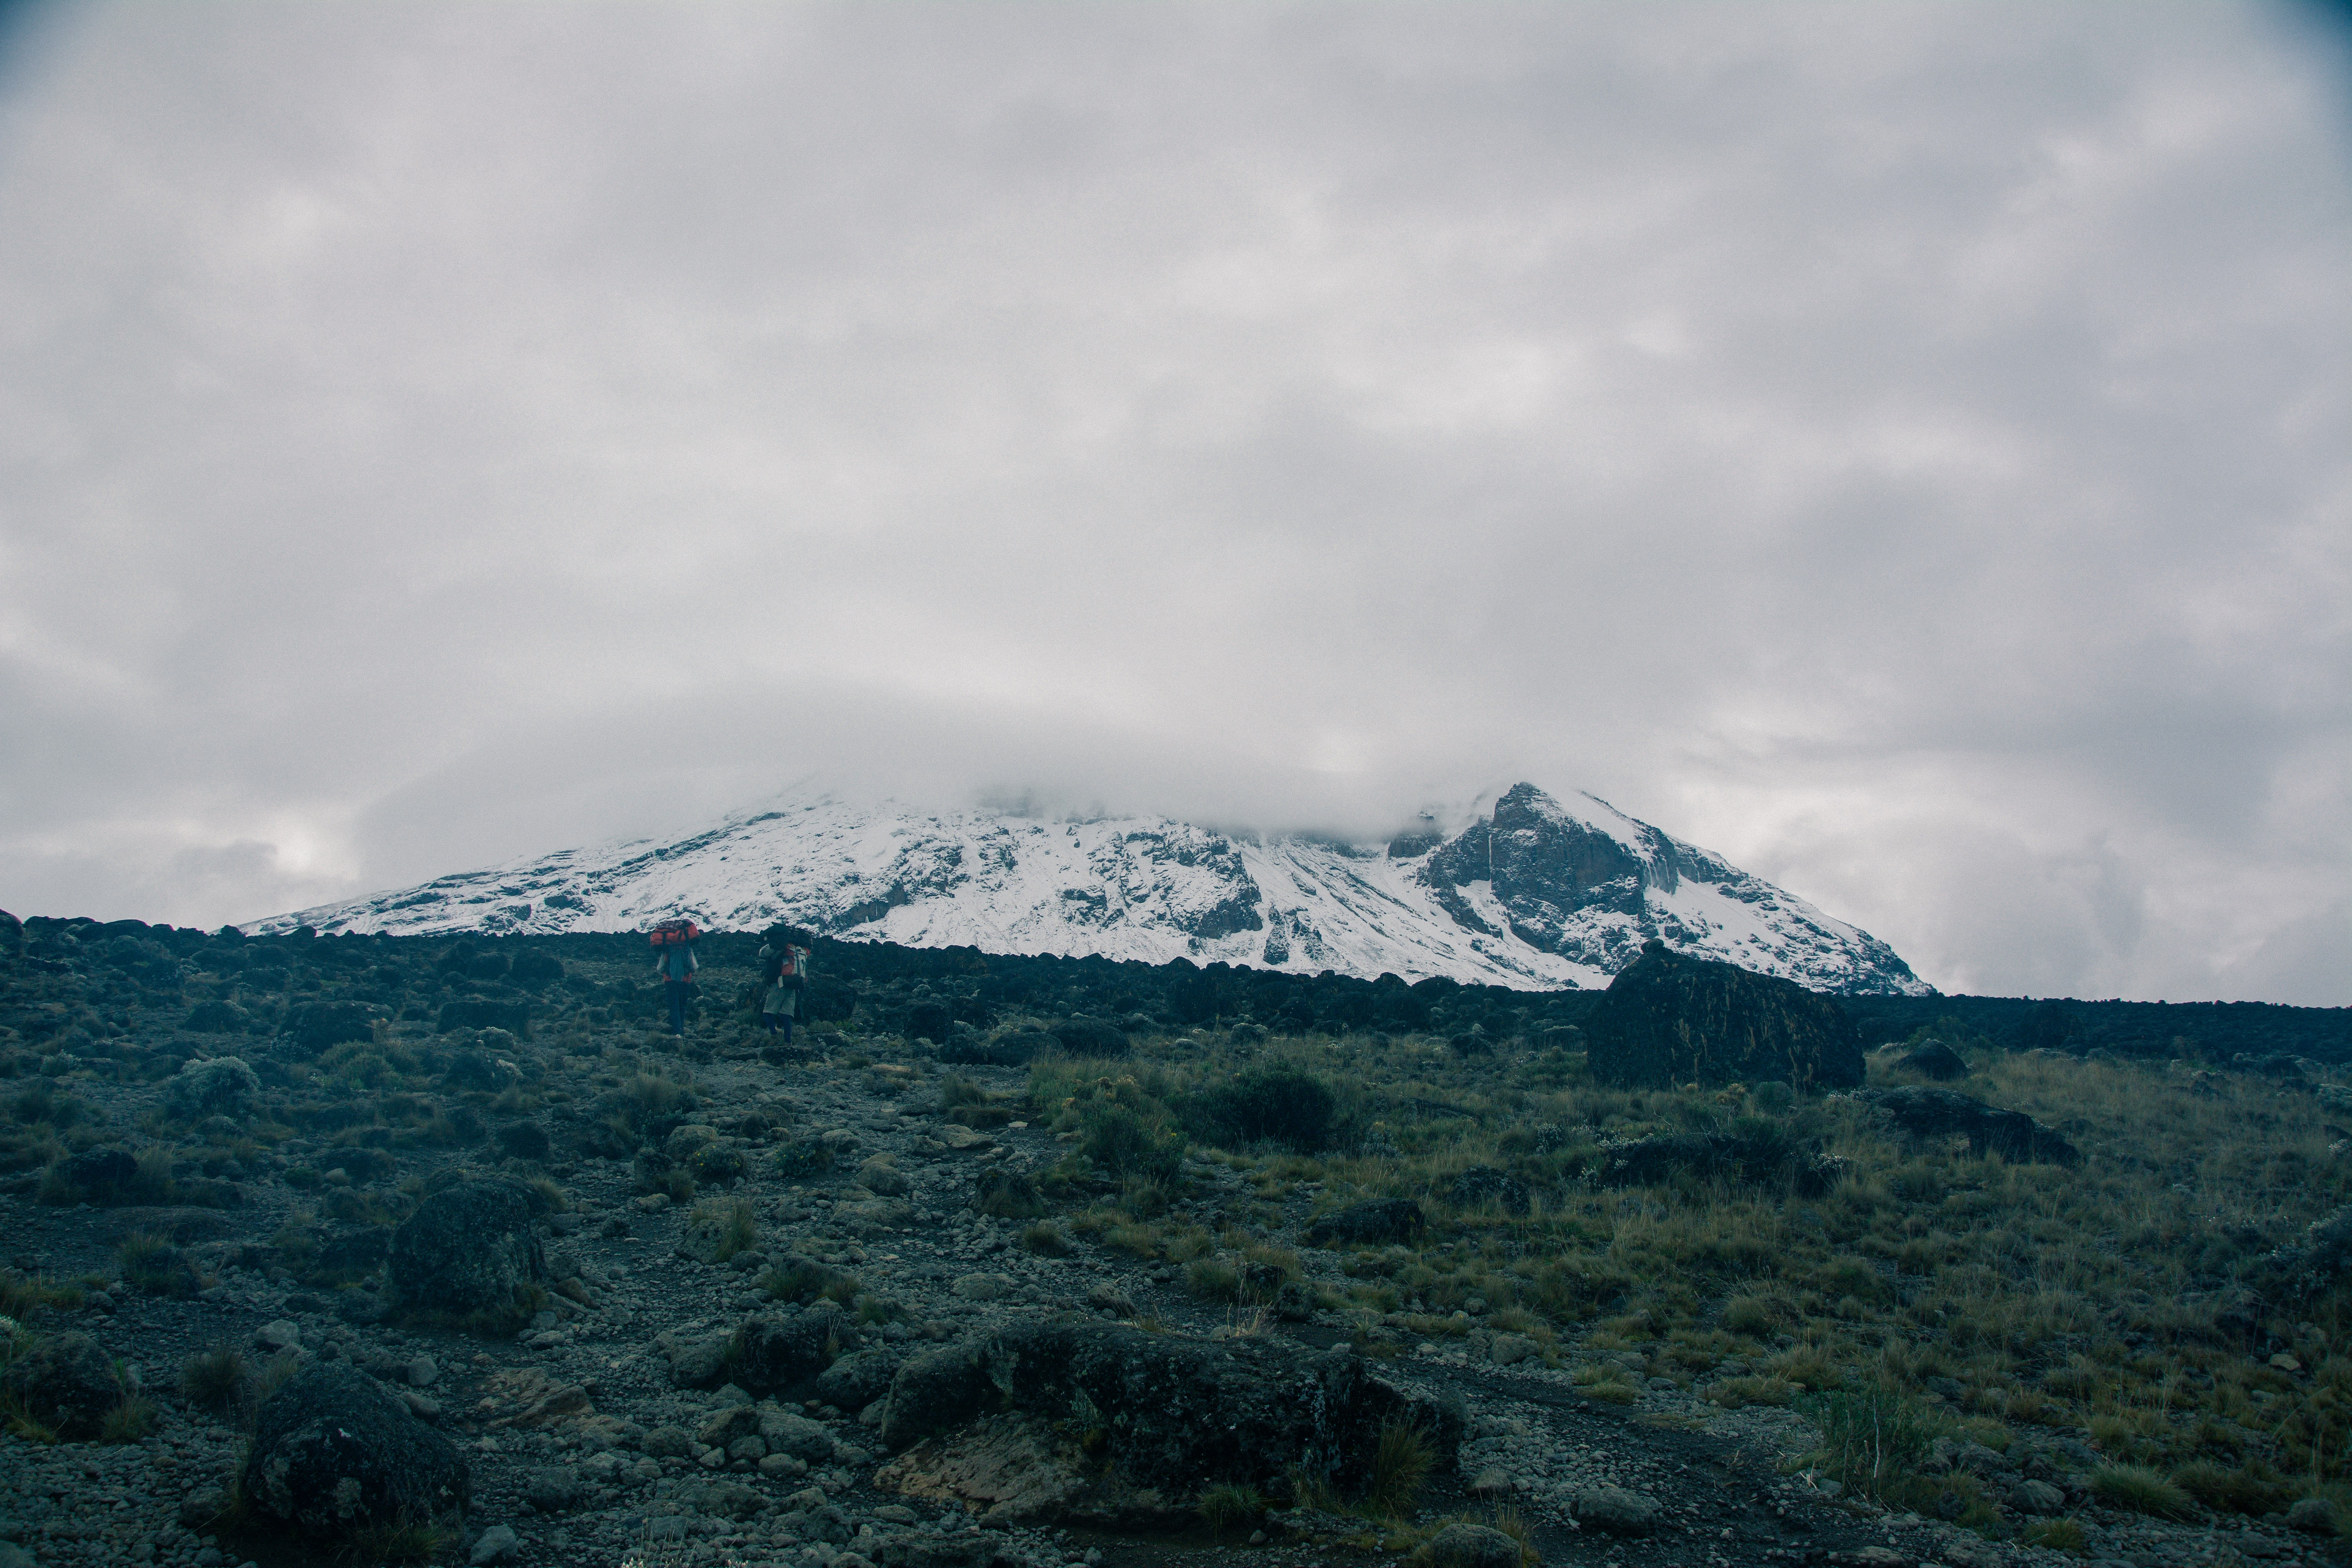 Overcast clouds cover icy mountains in green forest